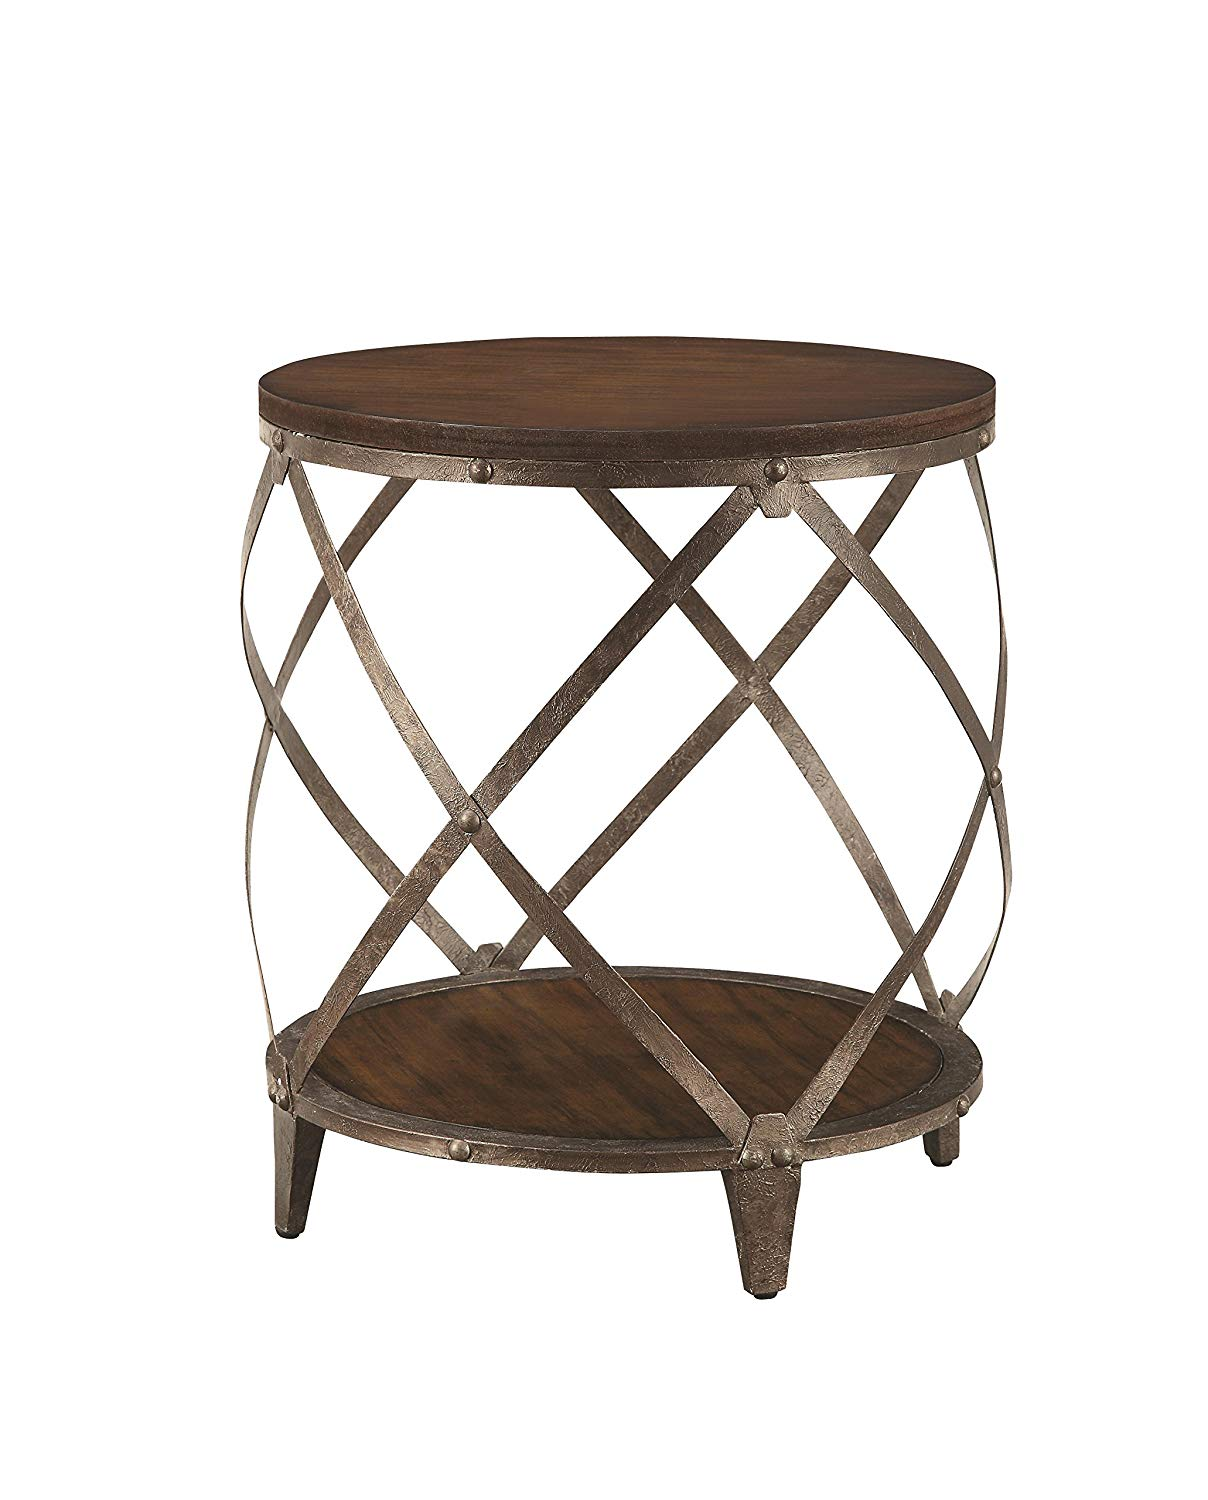 metal accent table with drum shape brown kitchen dining mixed material white and coffee remodel floor lamp light oak uttermost round end tables outdoor garden carpet bar pottery